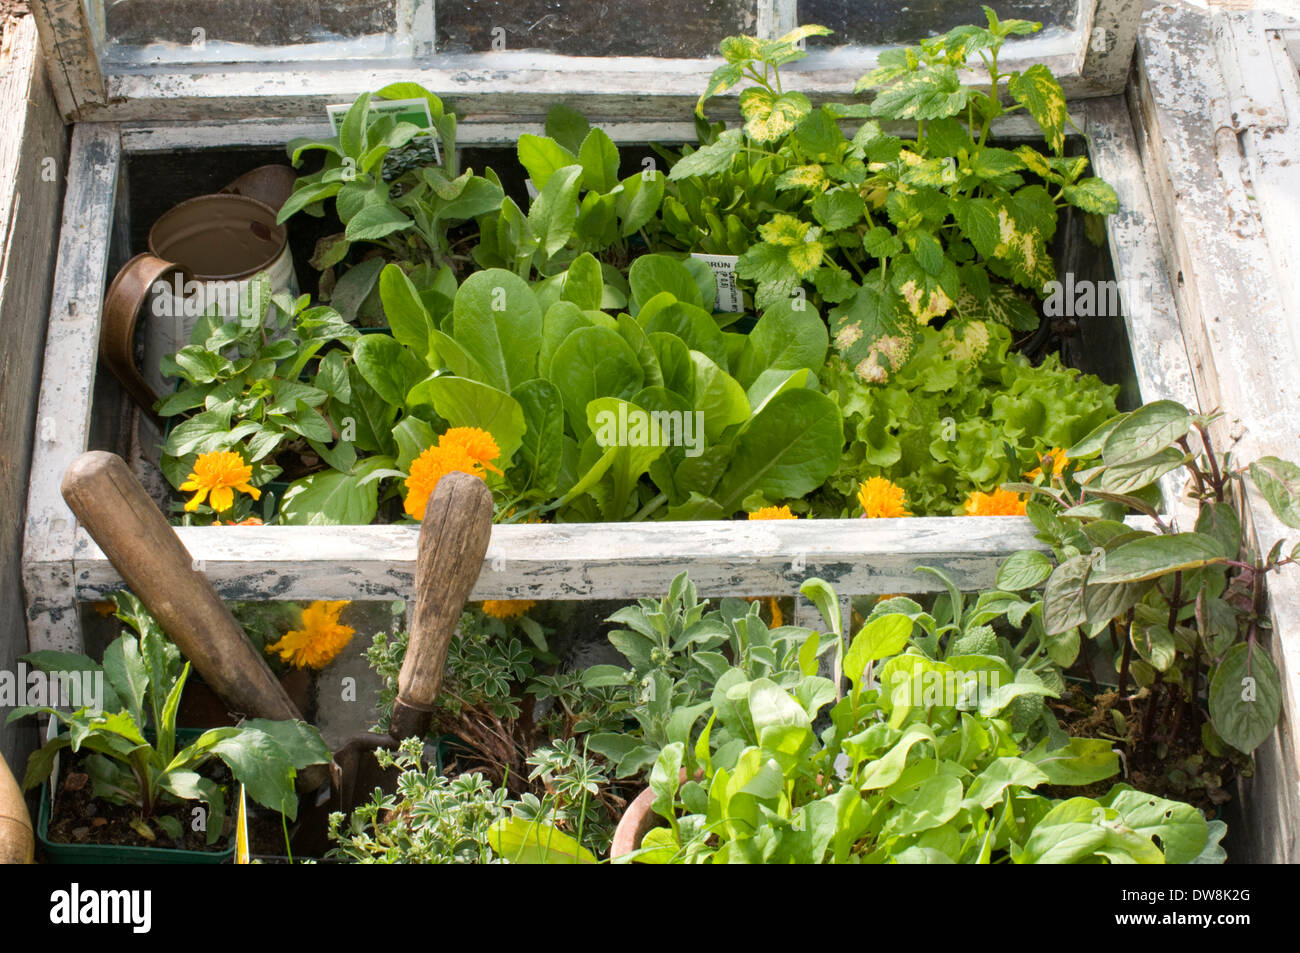 Cold frame, hotbed - Stock Image